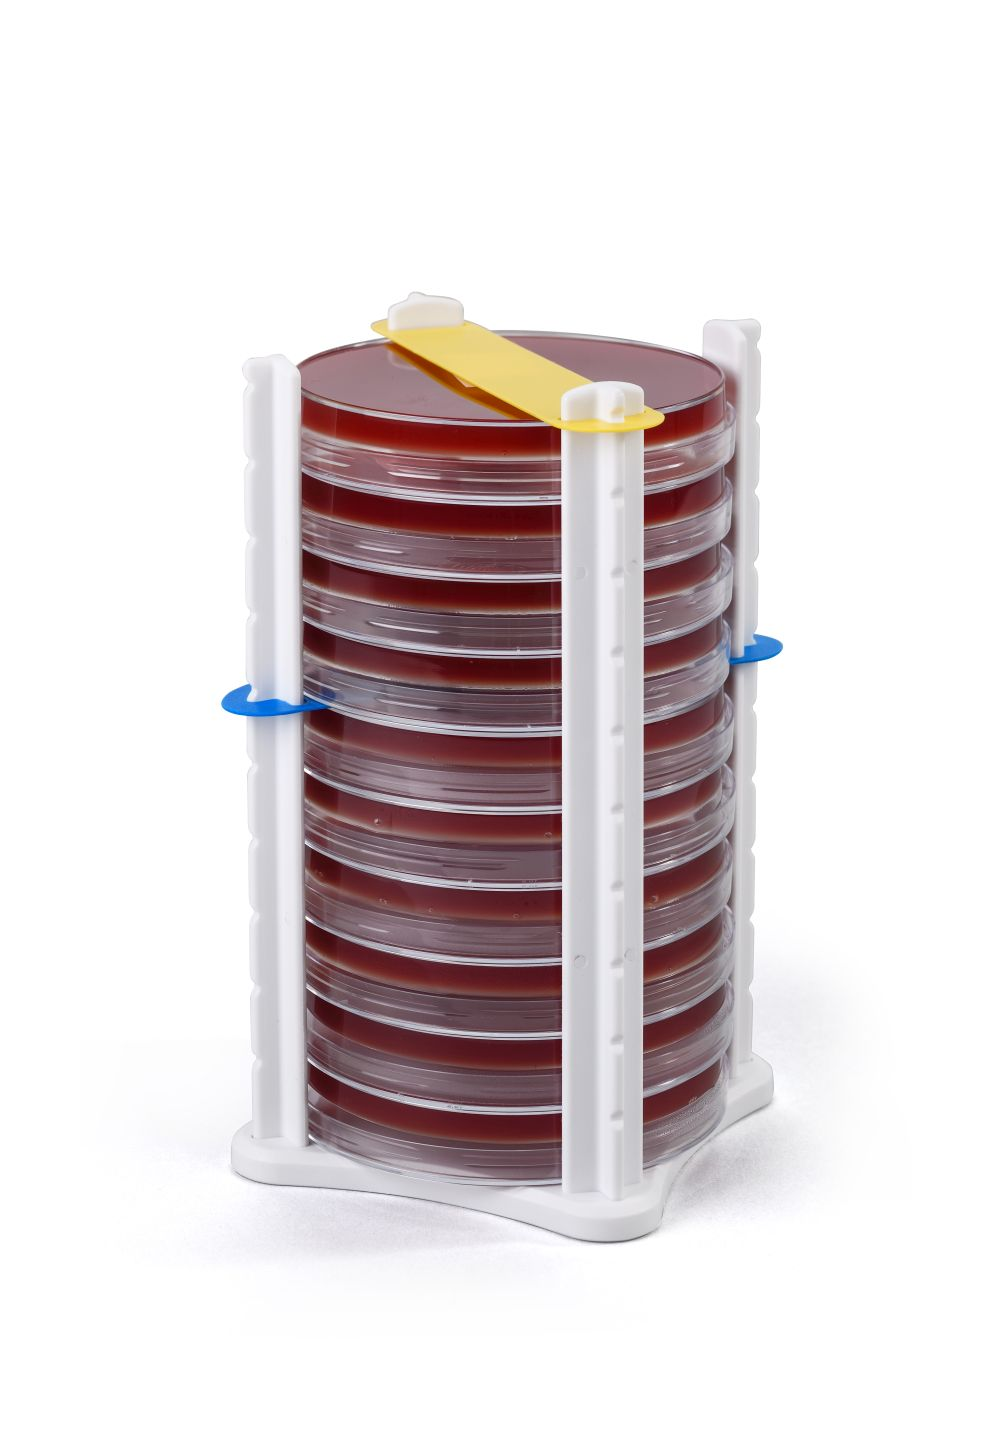 10 Plate Petri Dish Holder